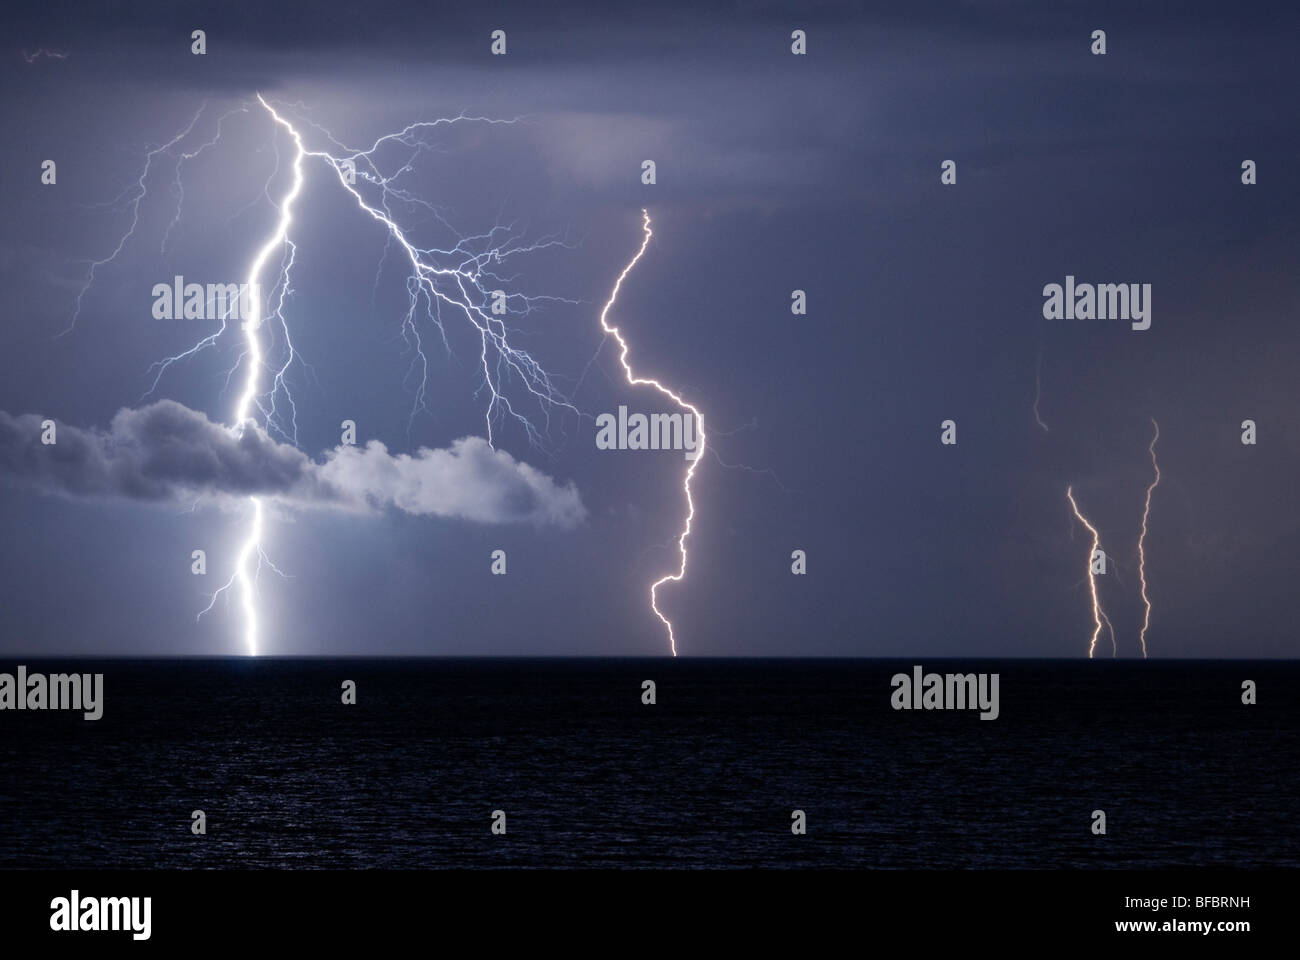 storm on the Mediterranean Sea in Italy Stock Photo